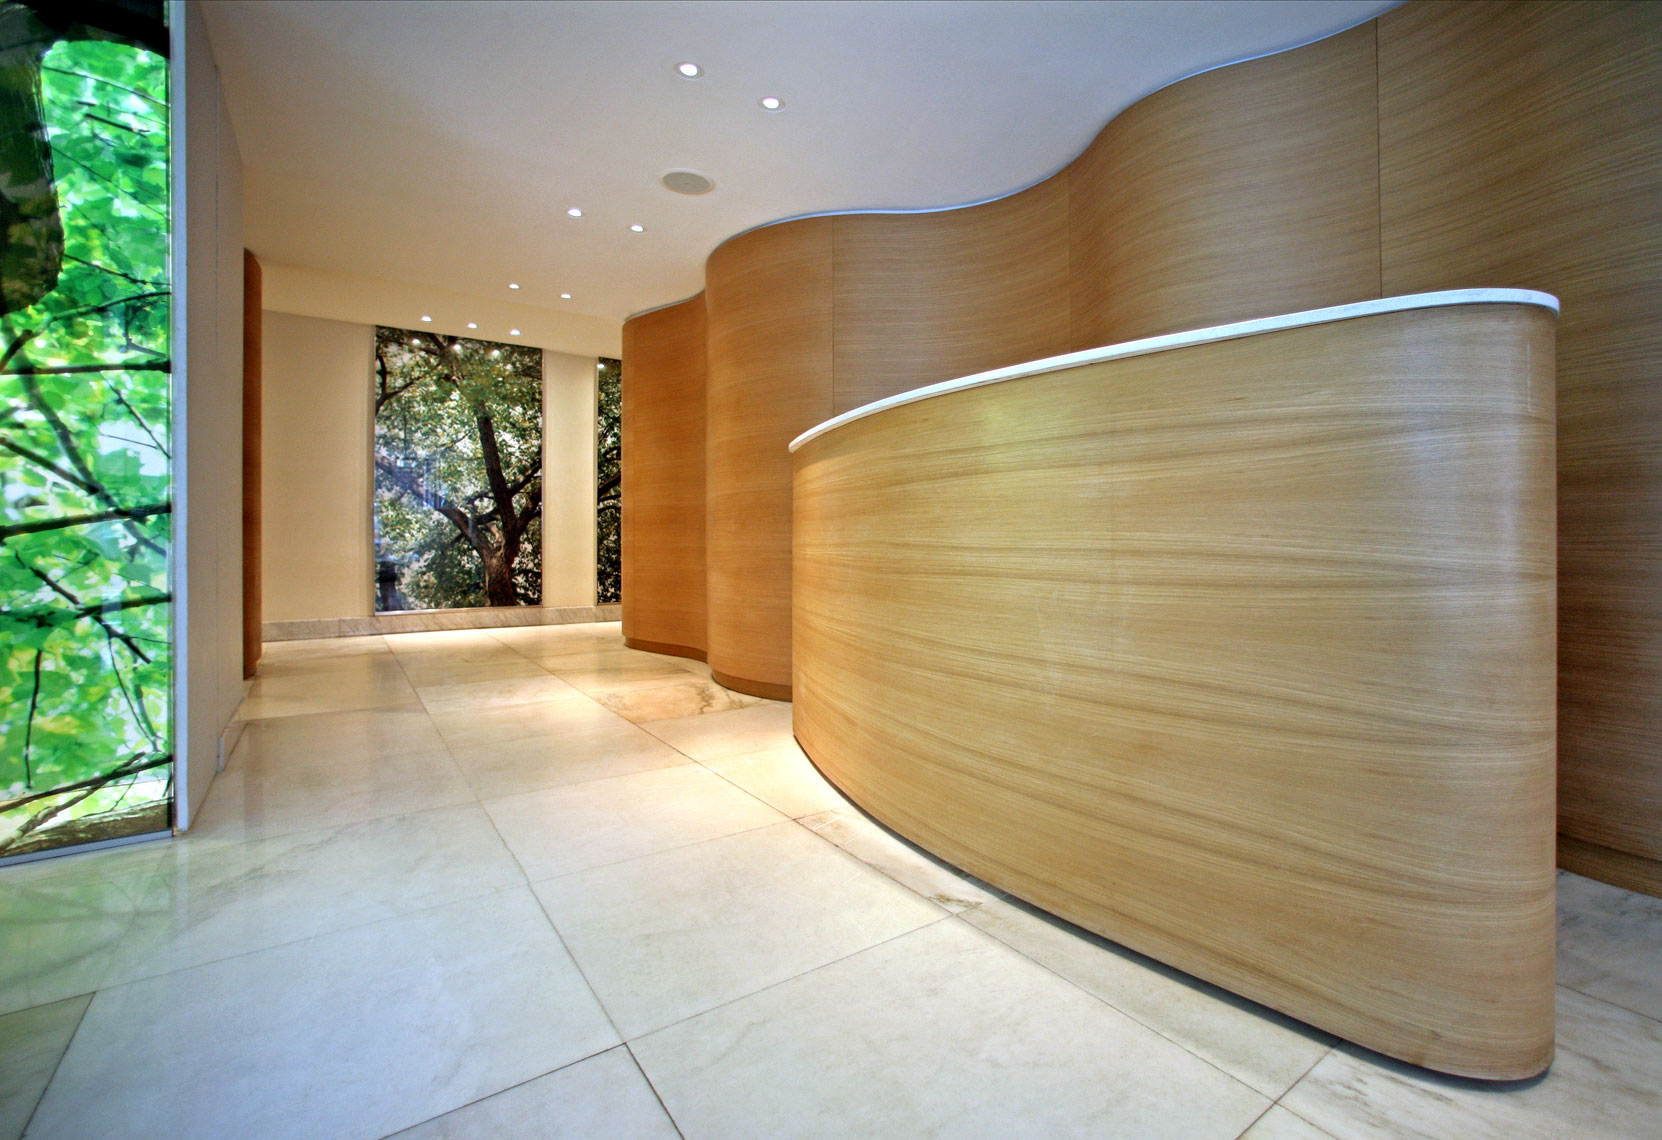 david-hu-architect-residential-interior-design_parc15-lobby_03.jpg